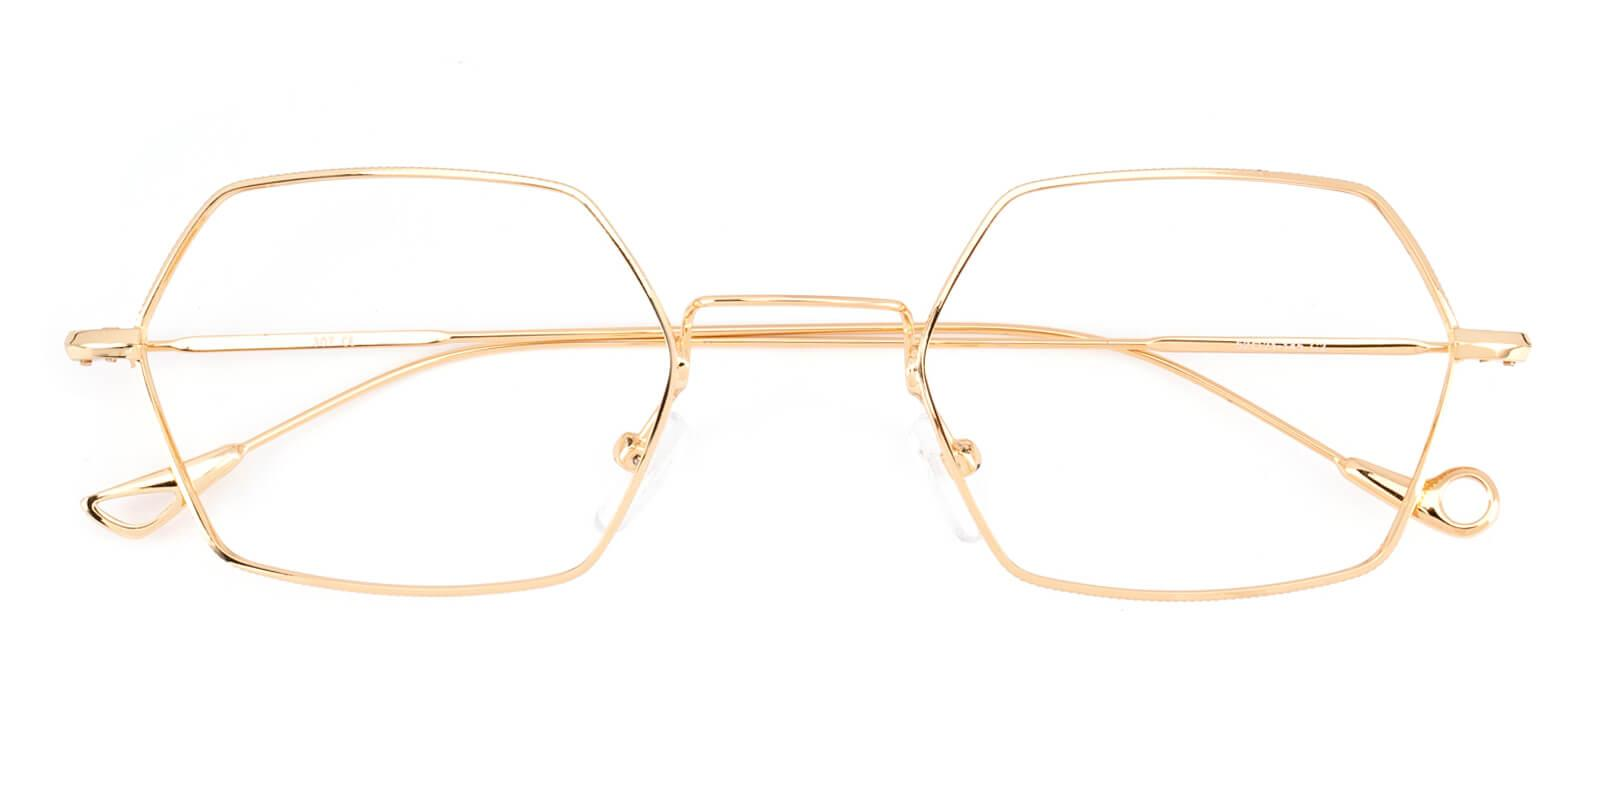 Goldien-Gold-Geometric-Metal-Eyeglasses-detail